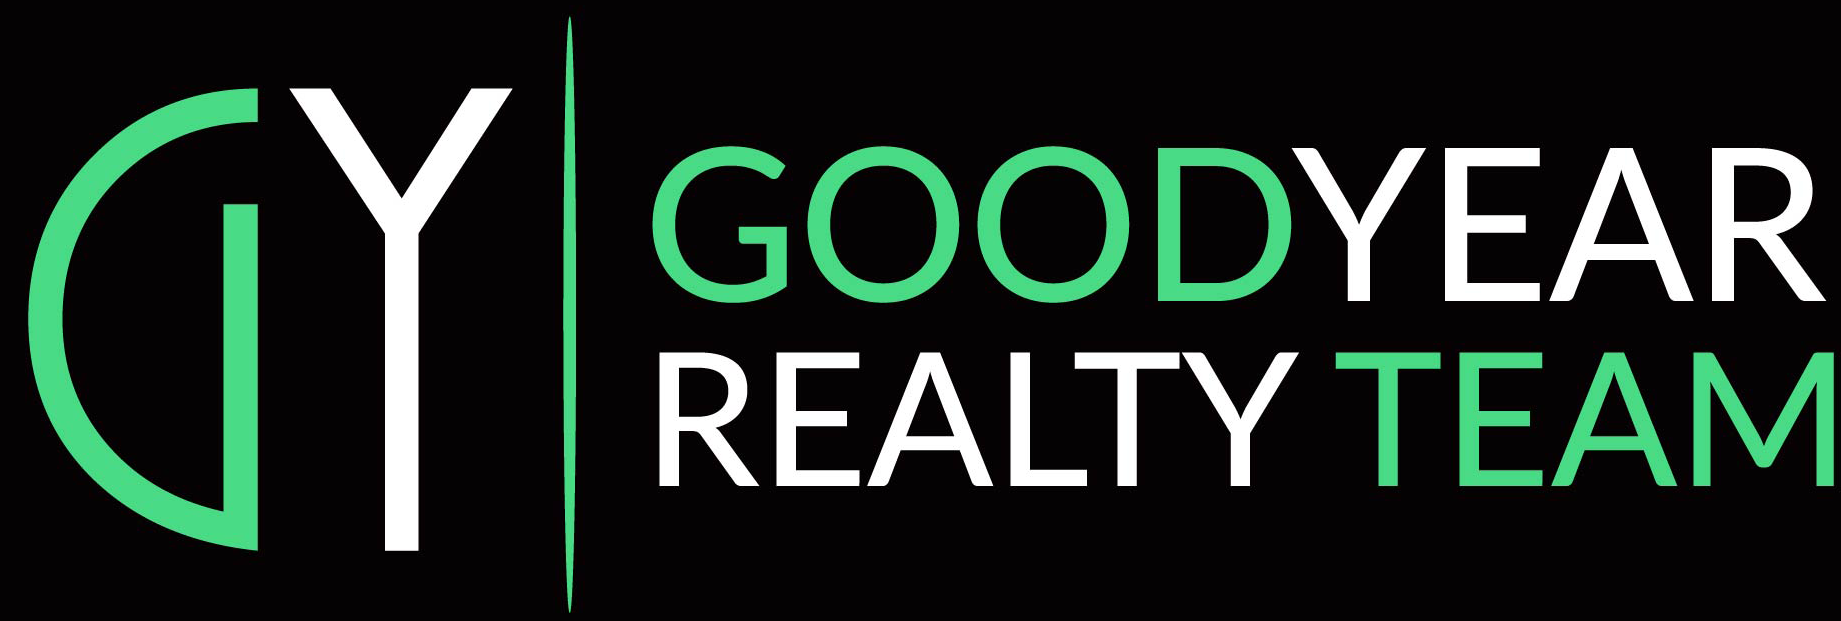 GoodYear Realty Team